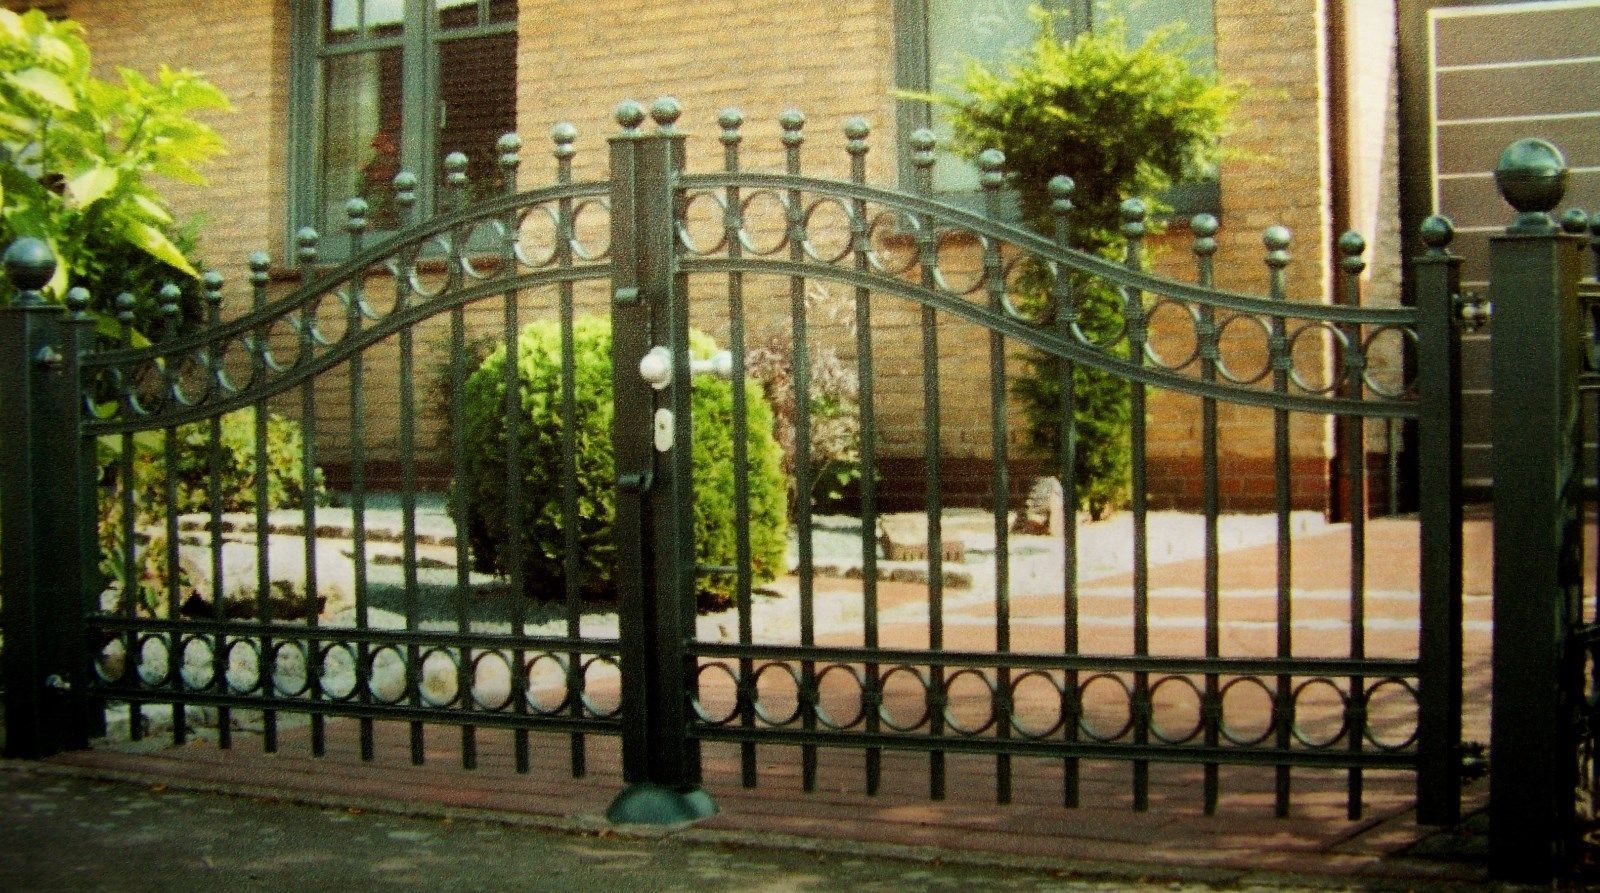 Garden Gates 139948 Custom Driveway Gate 12 Foot Wide 48 High Double Swing Buy It Now Only 1095 On Ebay Garden Garden Gates Double Swing Driveway Gate